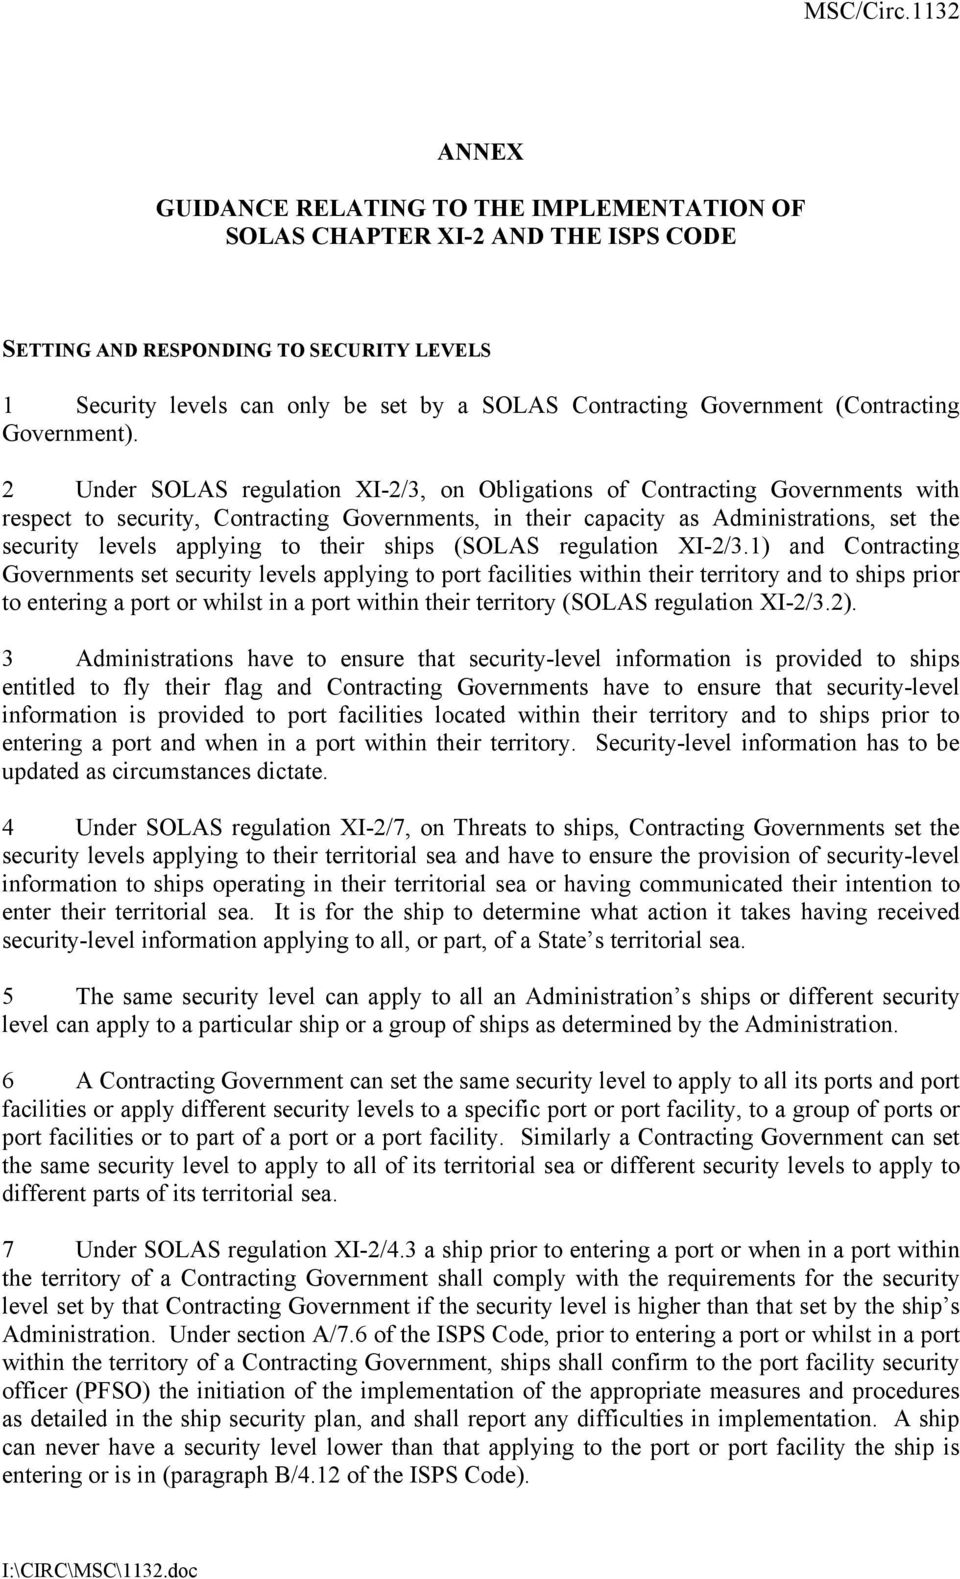 2 Under SOLAS regulation XI-2/3, on Obligations of Contracting Governments with respect to security, Contracting Governments, in their capacity as Administrations, set the security levels applying to